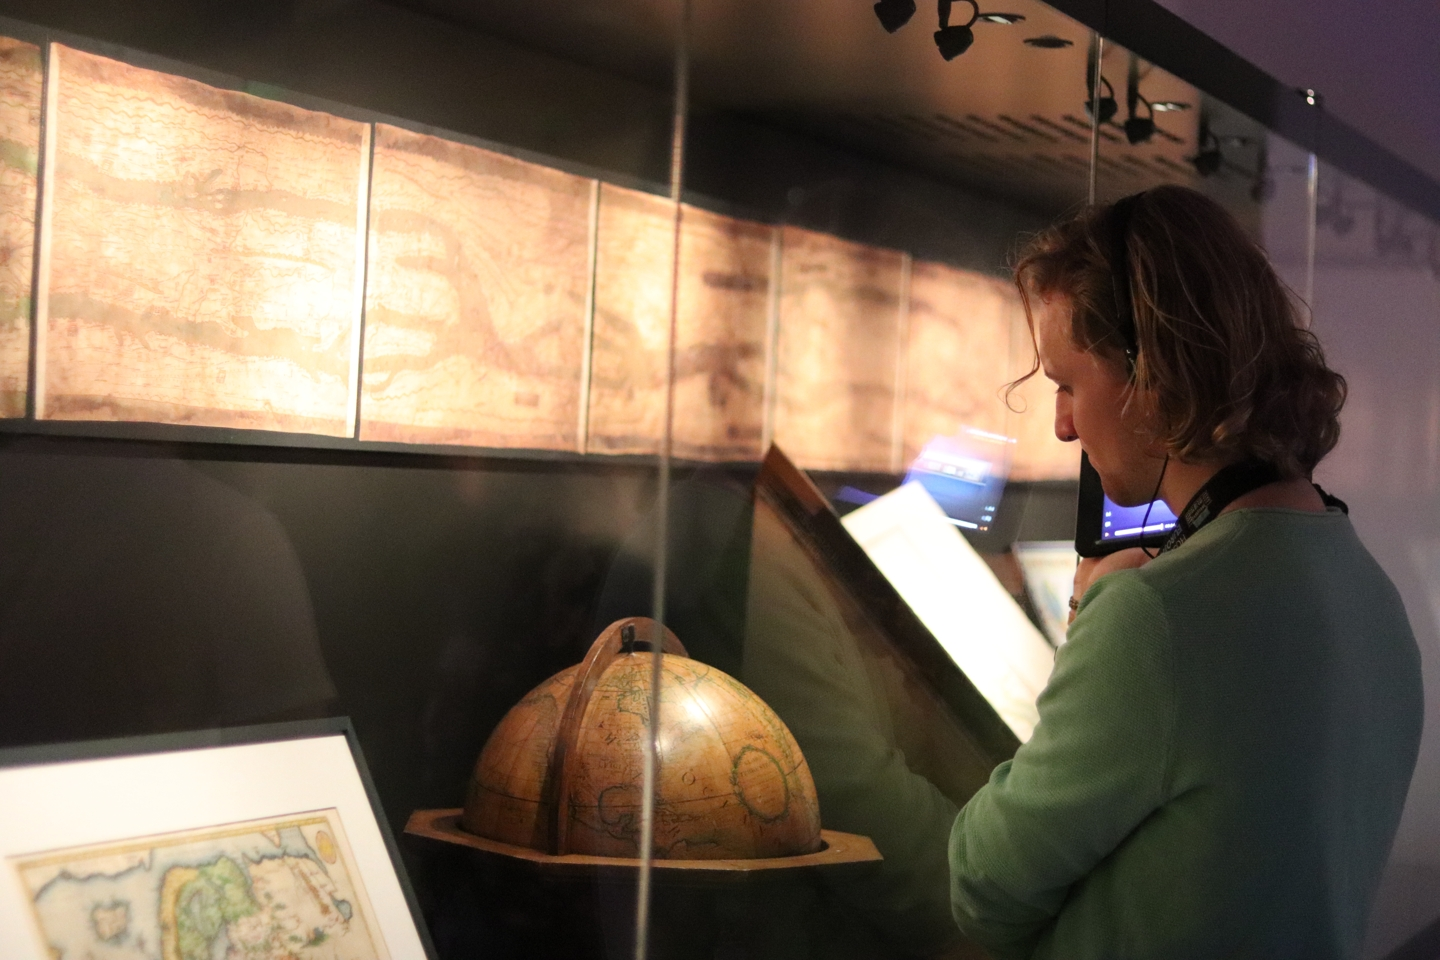 Student looking at the exhibits, an old map and globe, at the museum